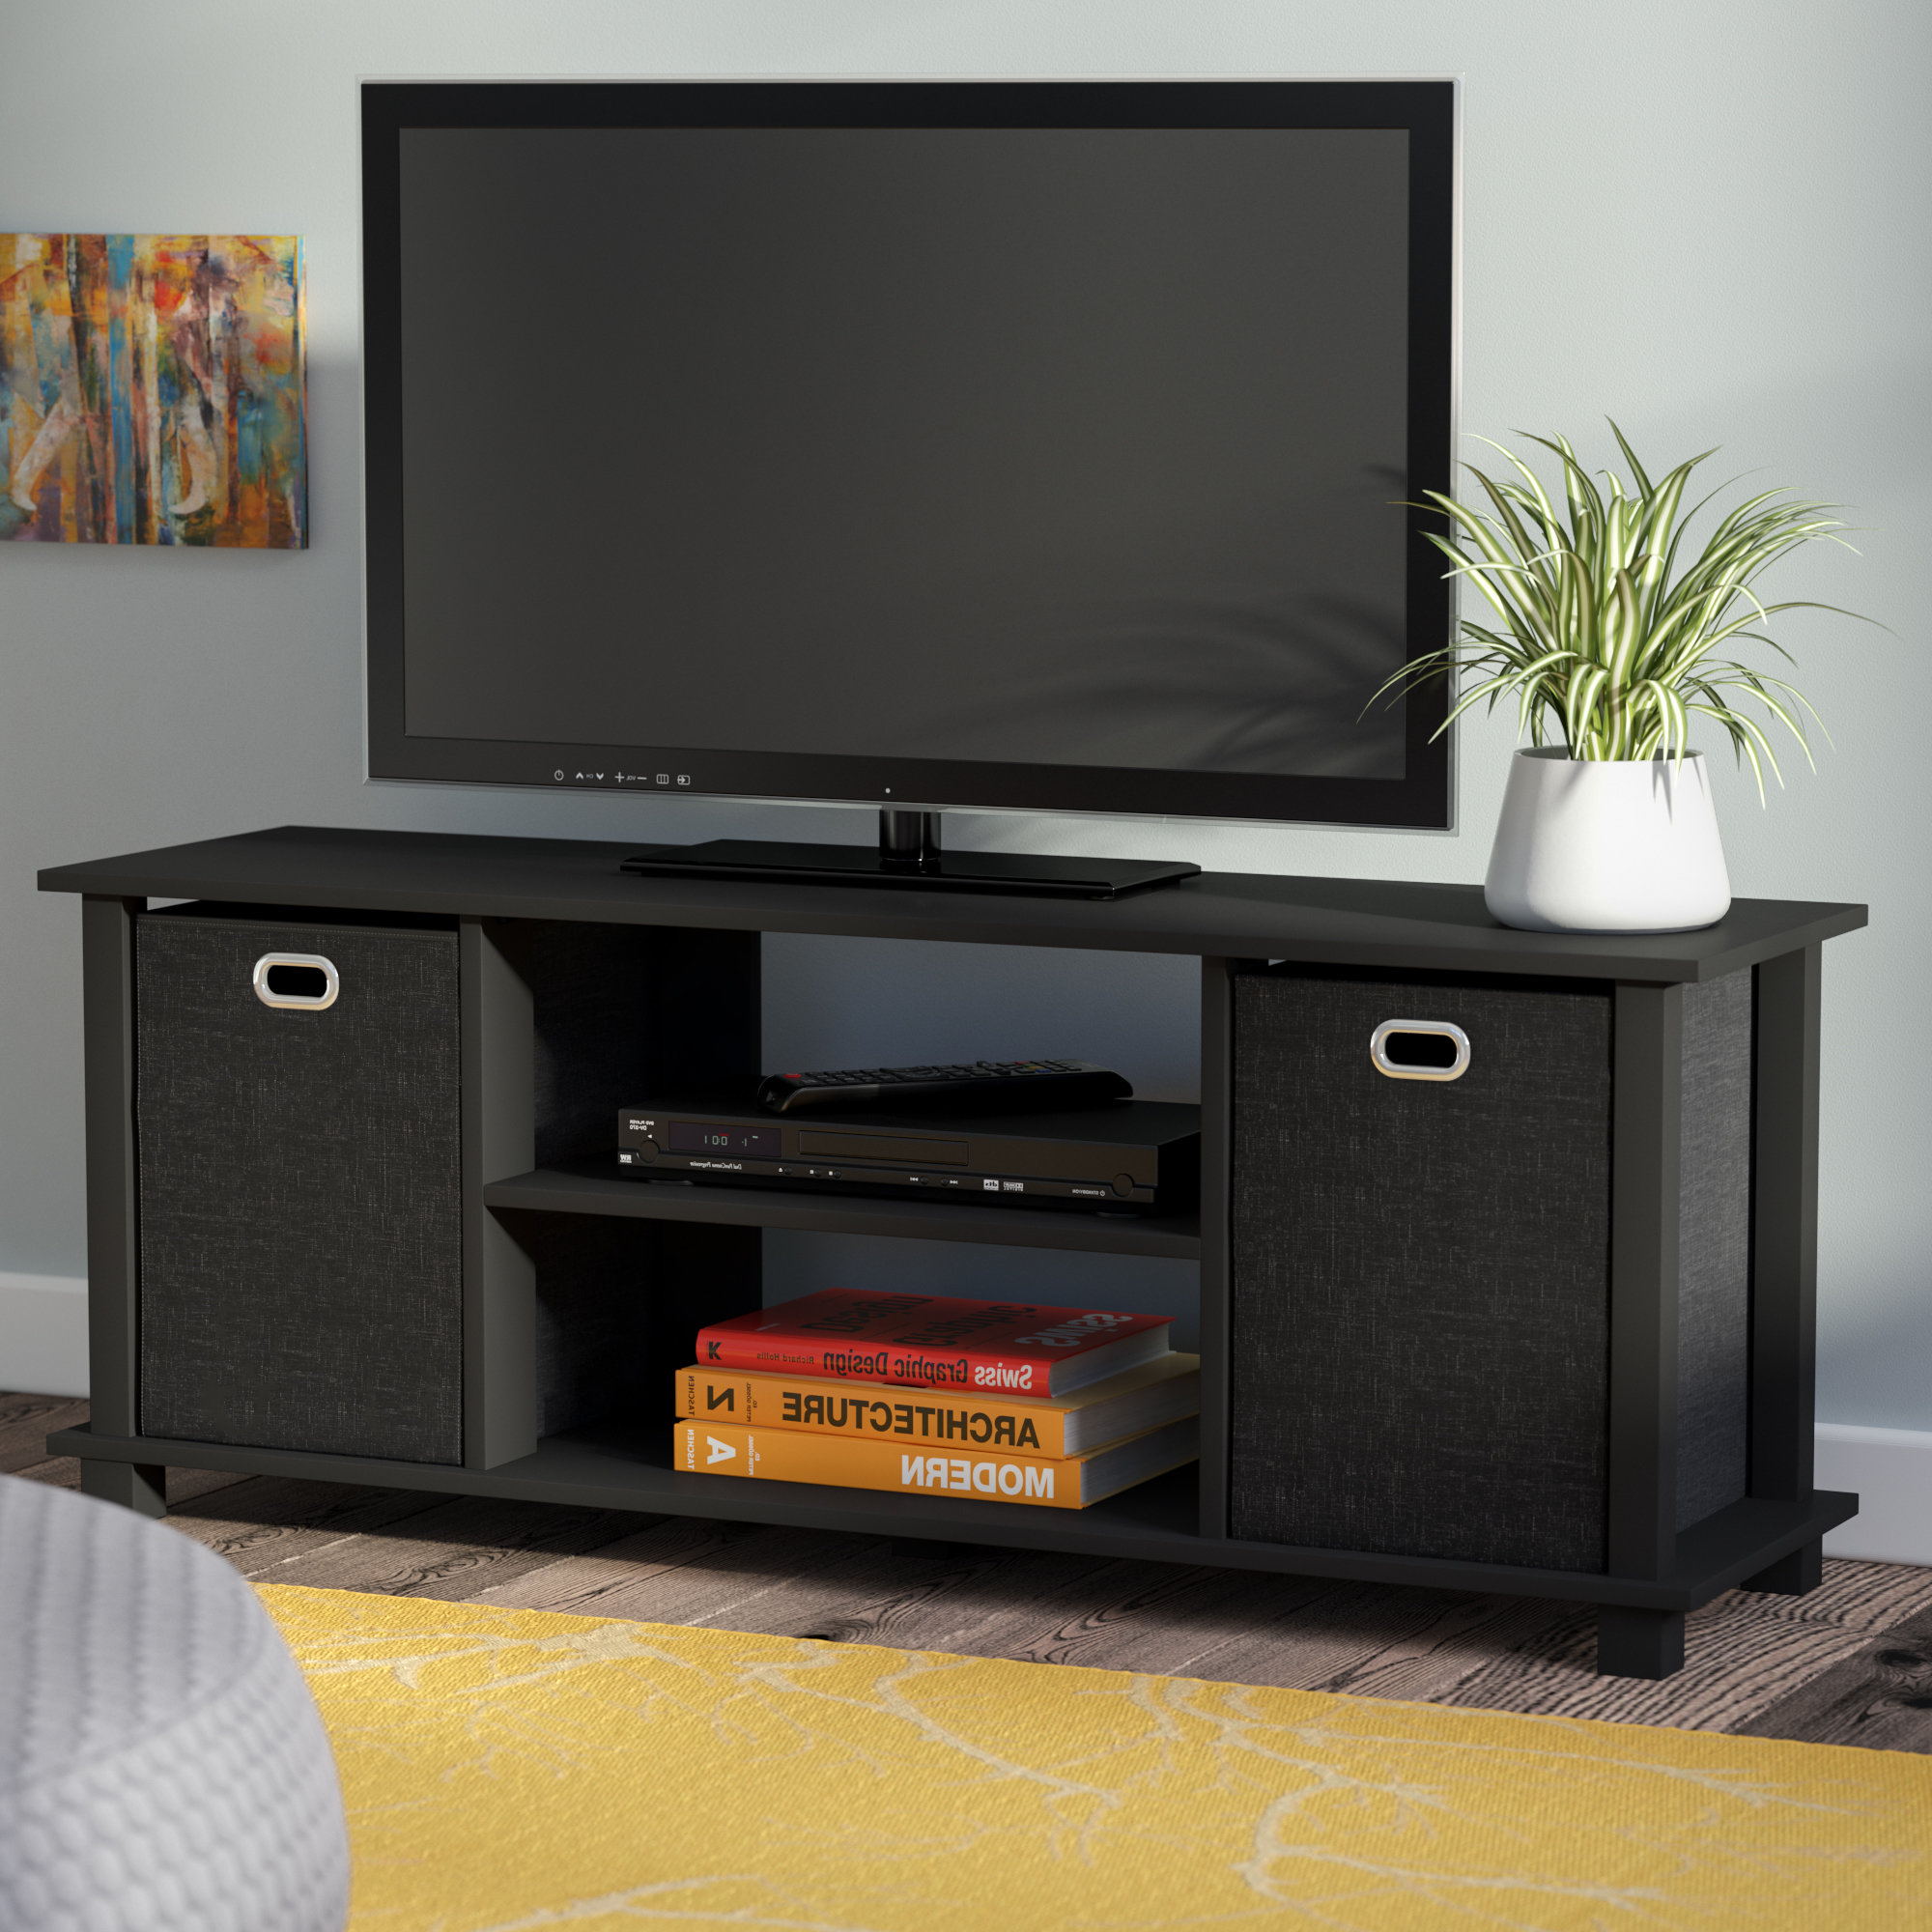 Recent Traditional Tv Stands You'll Love (View 9 of 20)